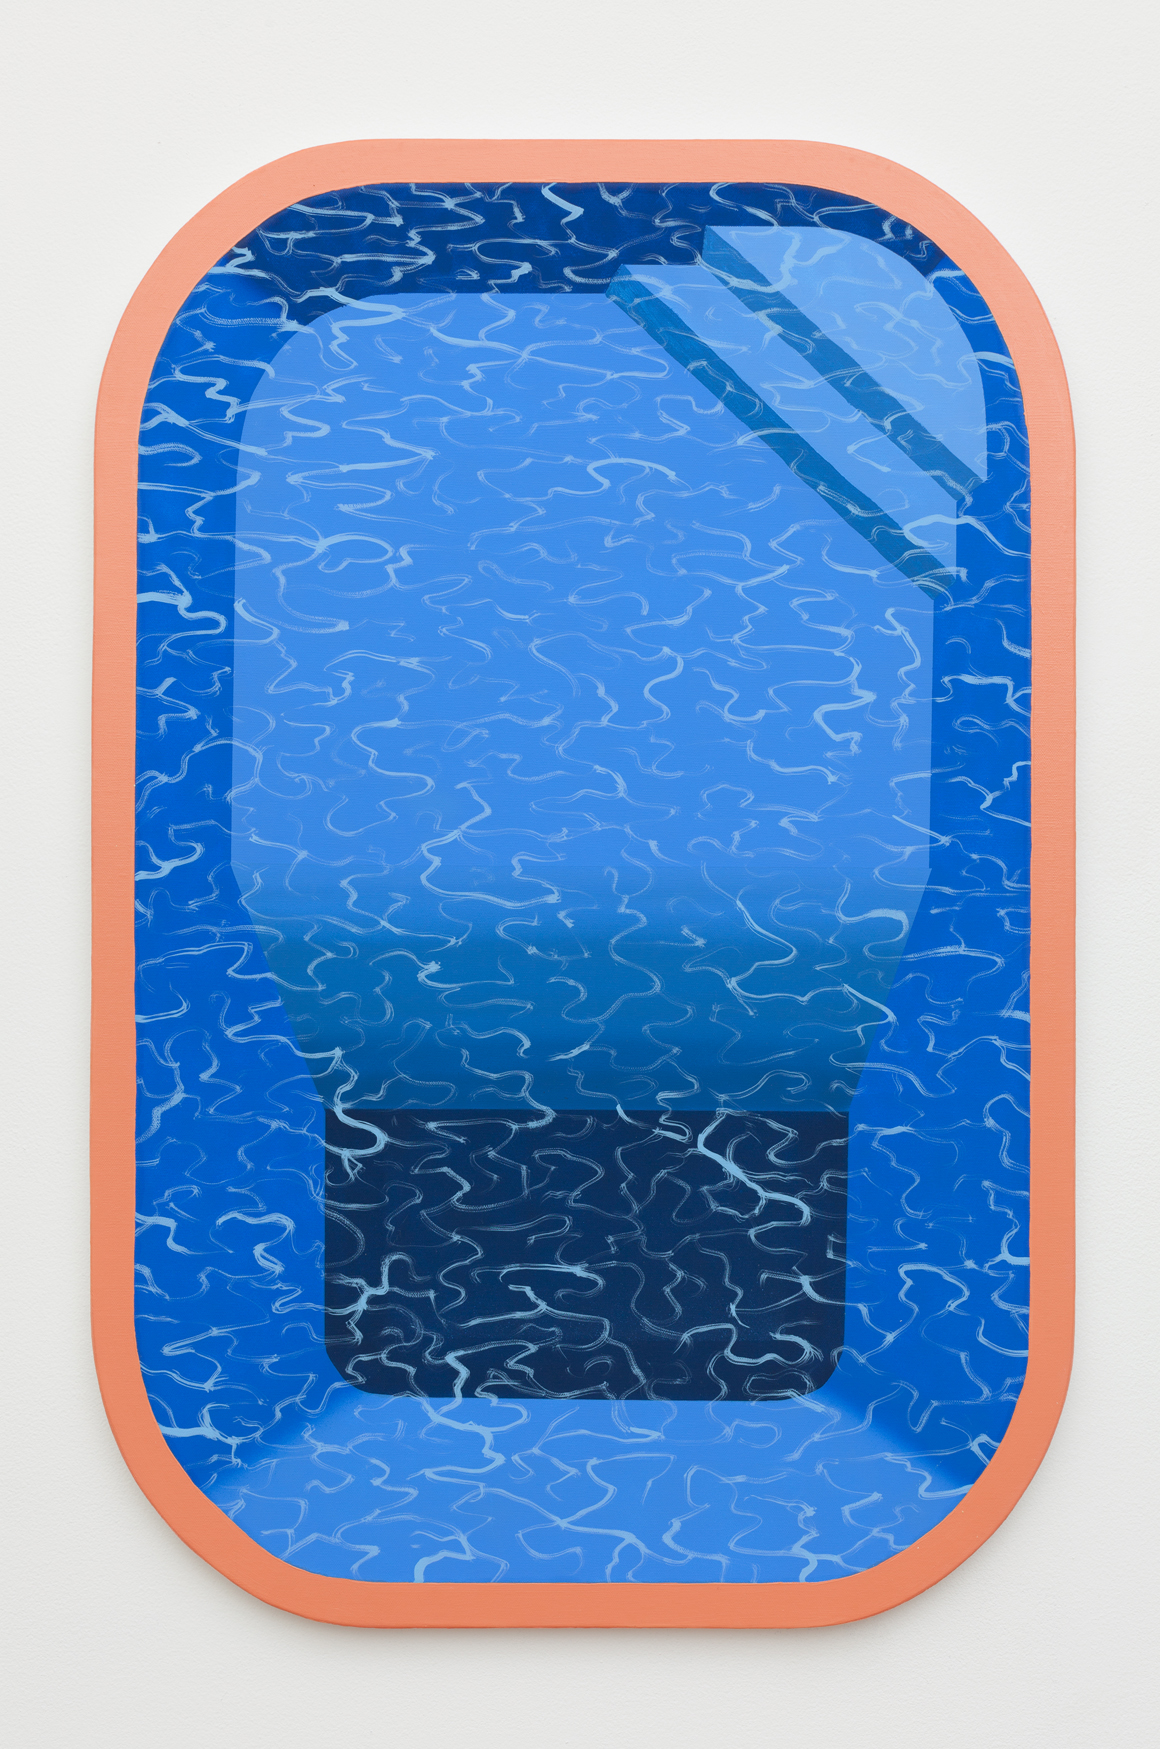 "<p><span class=""name"">Adam Eddy</span><br><em>Pool With Orange Border</em><span class='media'>Vinyl and oil on canvas</span>36 x 24 in  (91.4 x 61 cm)<br>2017<br><a class='inquire' href='mailto:info@gildargallery.com?subject=Artwork Inquiry AEDD0001&body=I am interested in finding out more about Pool With Orange Border by Adam Eddy'>Inquire</a></p>"